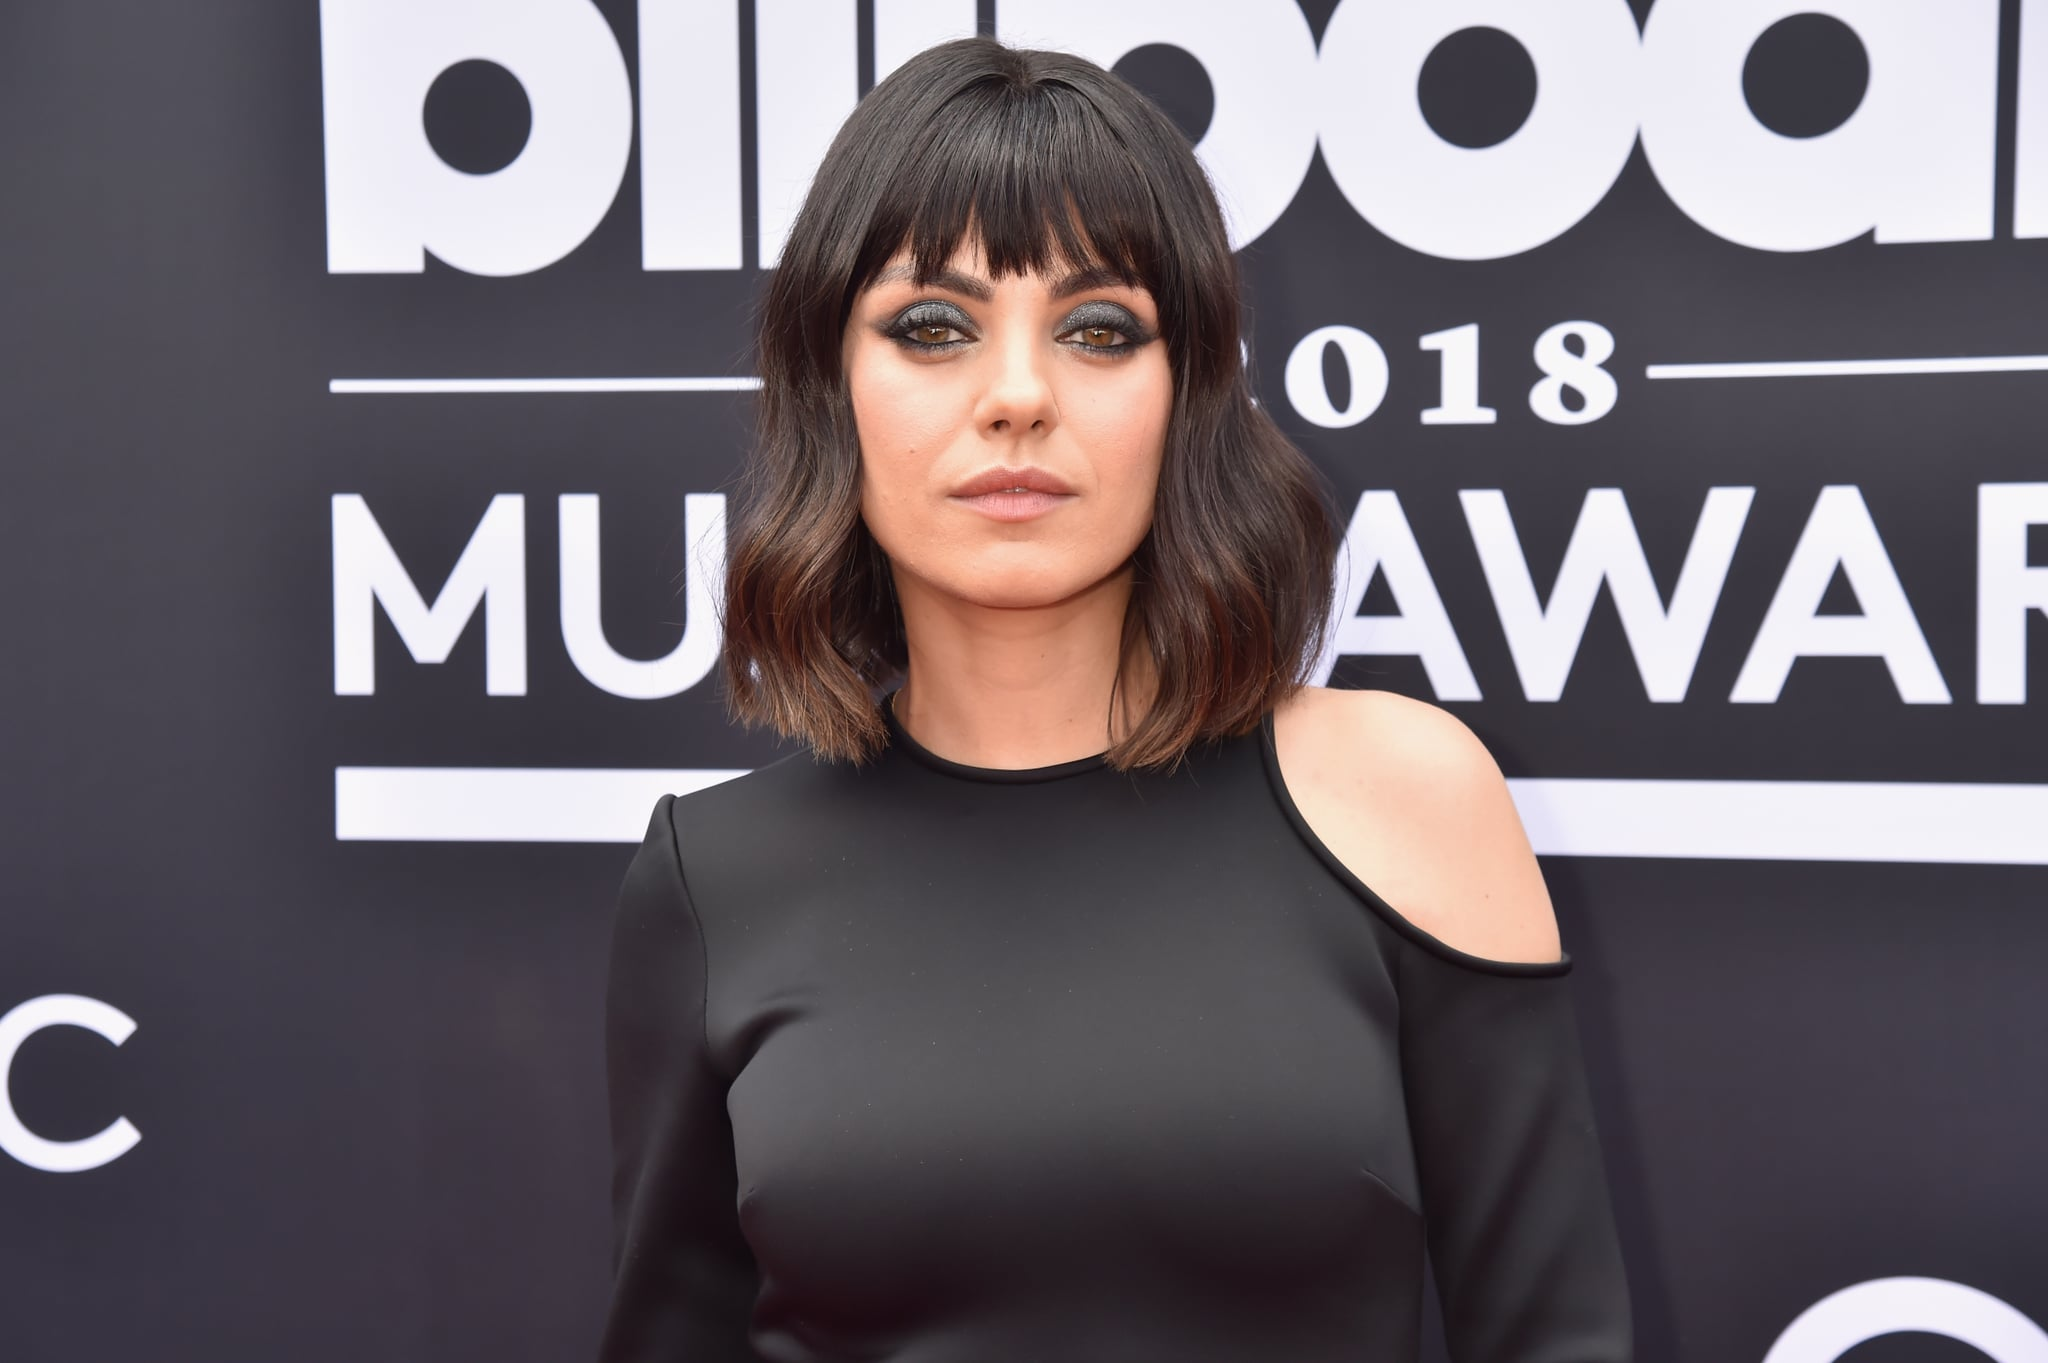 LAS VEGAS, NV - MAY 20:  Actor Mila Kunis attends the 2018 Billboard Music Awards at MGM Grand Garden Arena on May 20, 2018 in Las Vegas, Nevada.  (Photo by Jeff Kravitz/FilmMagic)